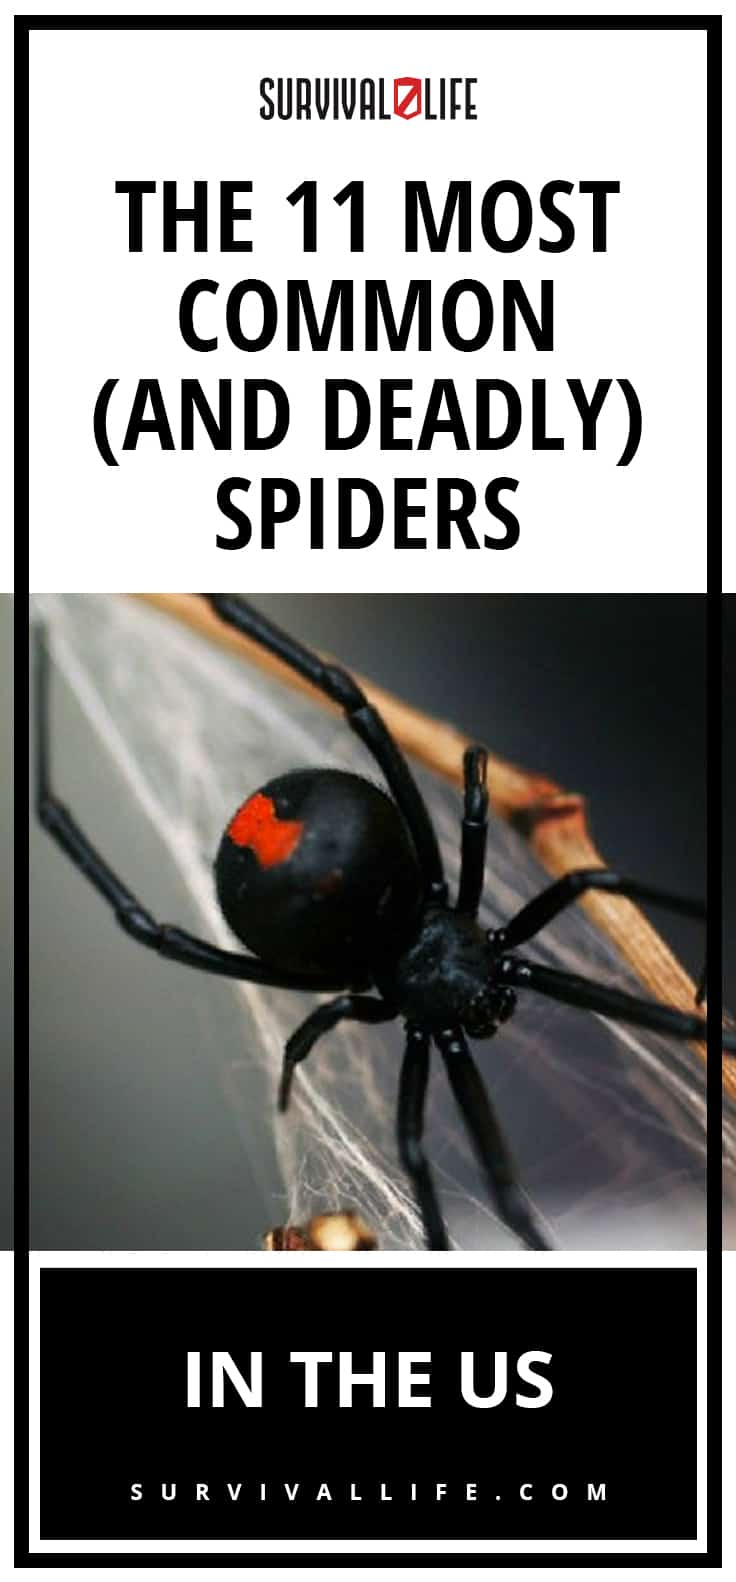 The Most Common (And Deadly) Spiders In The U.S. | https://survivallife.com/most-common-deadly-spiders-usa/